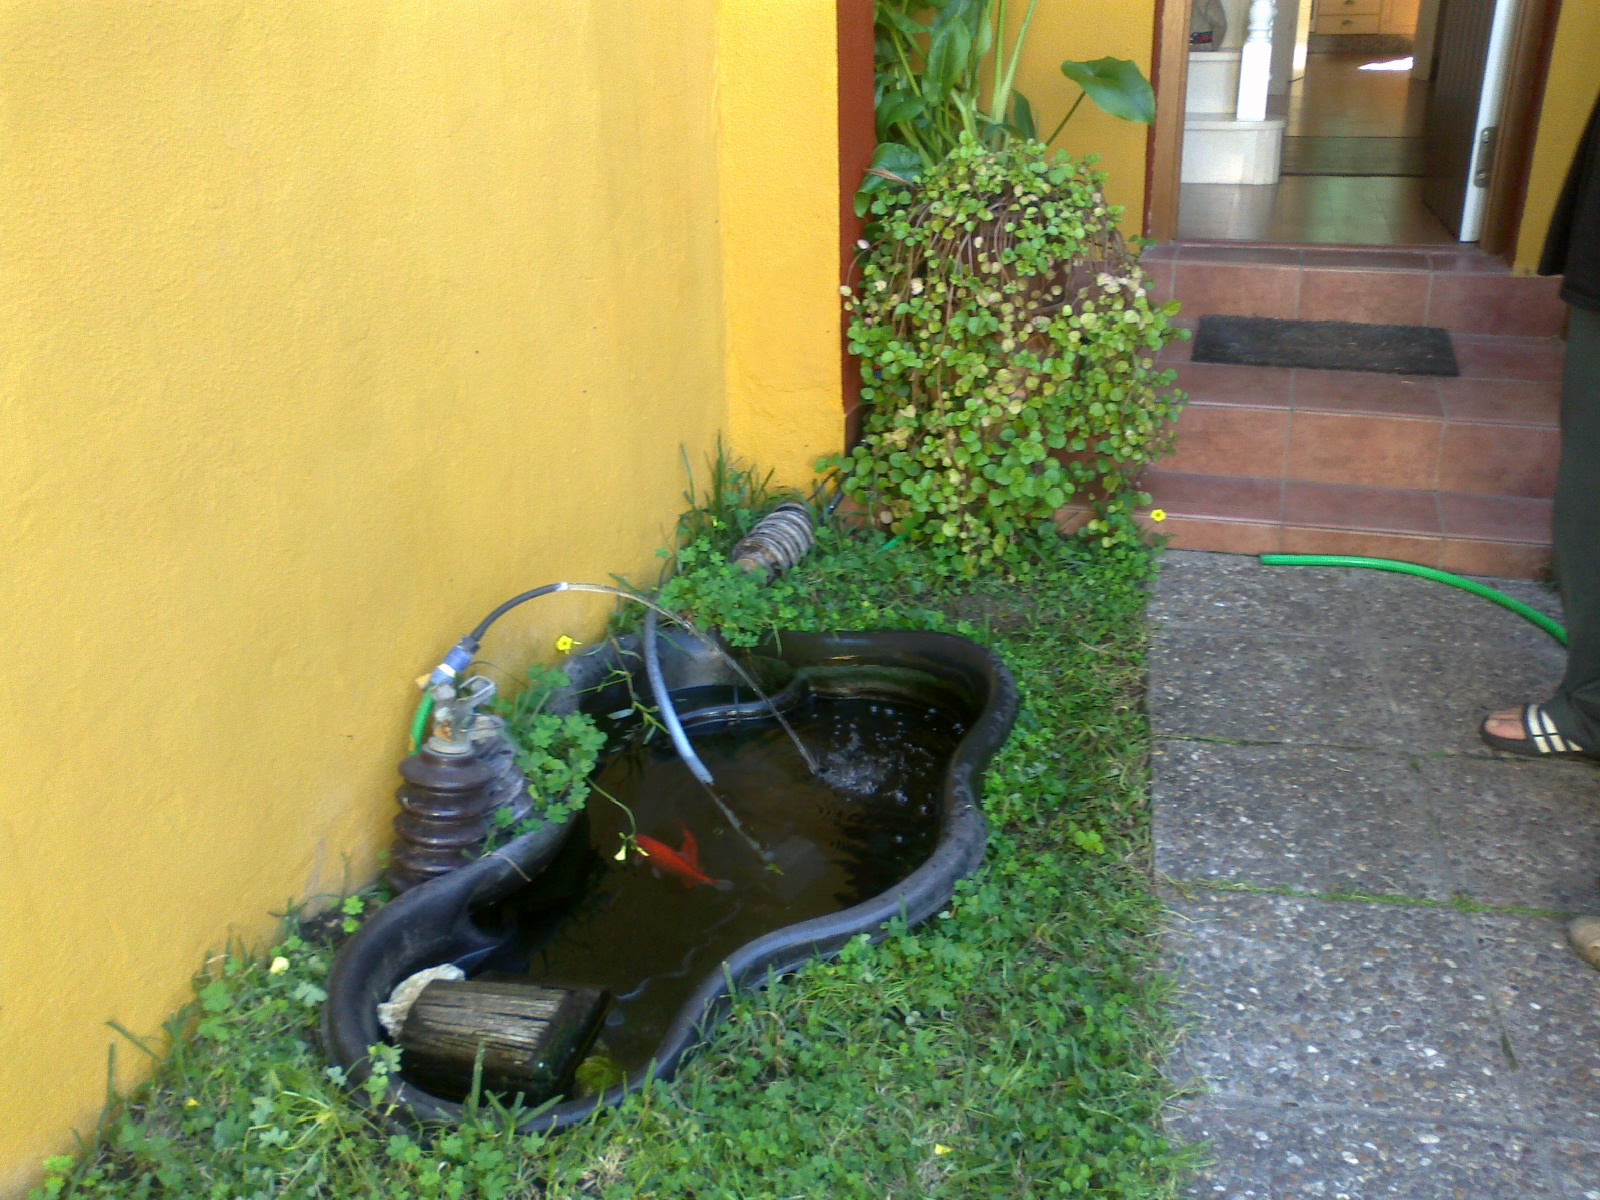 Aljavera reformas del hogar estanque para peces for Estanques para peces